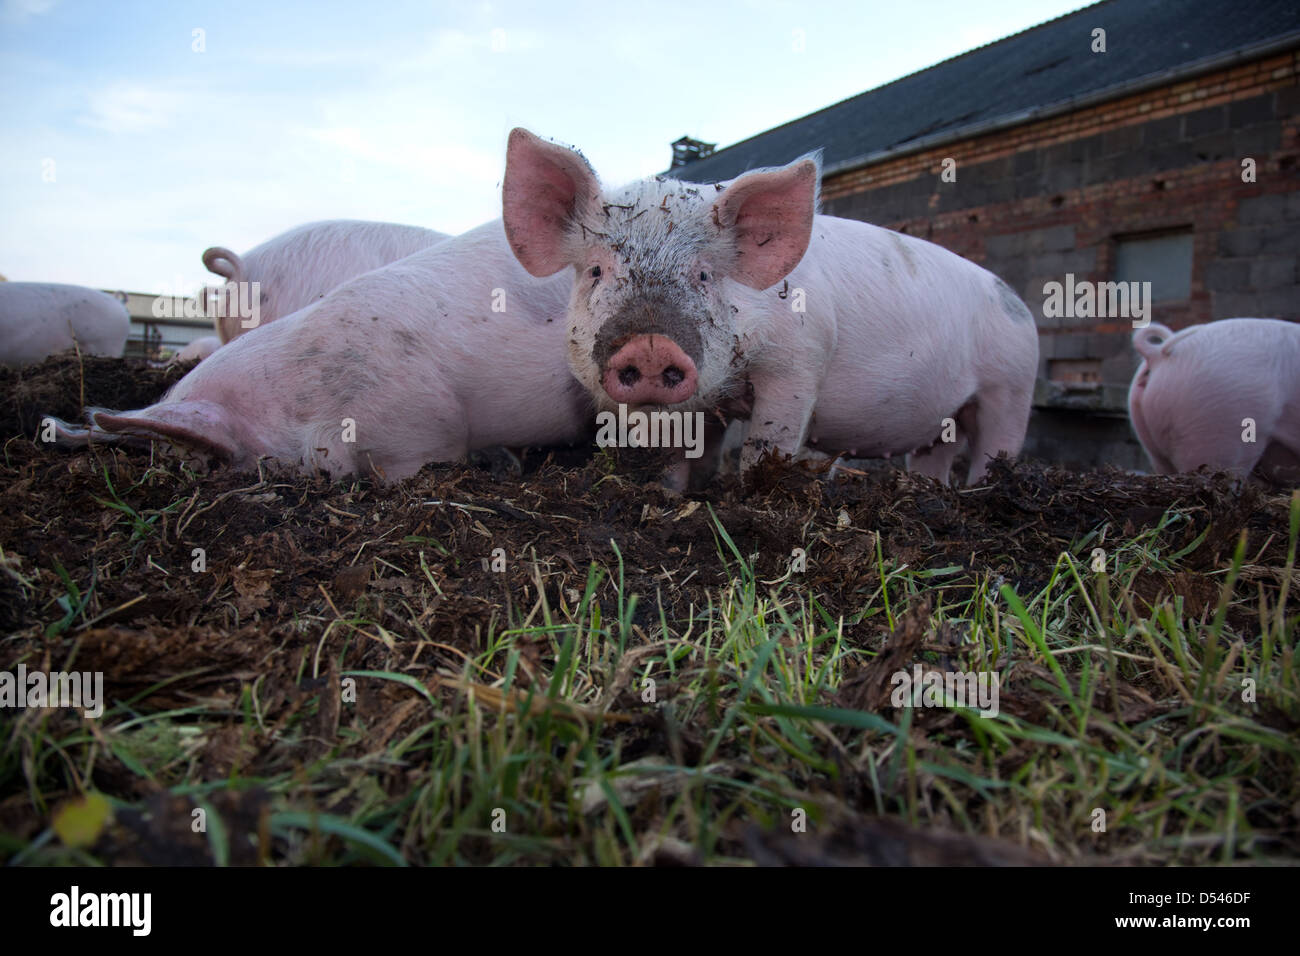 Brandenburg / Havel, Germany, pigs in a meadow - Stock Image